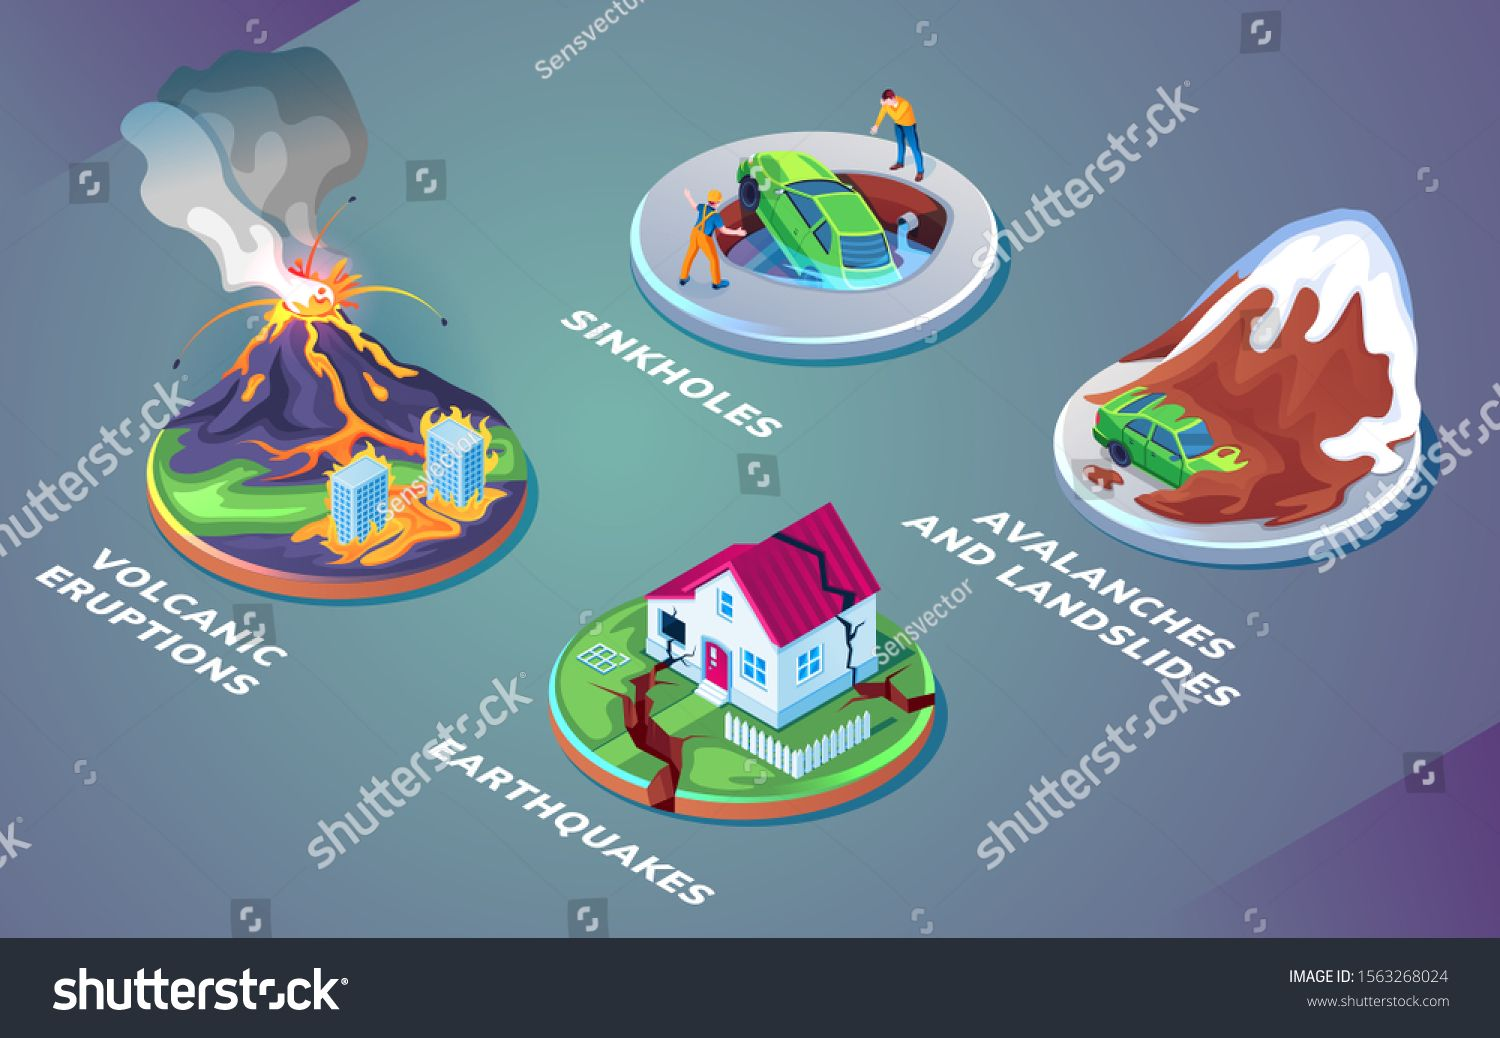 Geological Natural Disasters Or Geology Hazards Catastrophe And Cataclysm Sinkhole Or Cenote Swallet Or Doline Avalanch Natural Disasters Geology Disasters